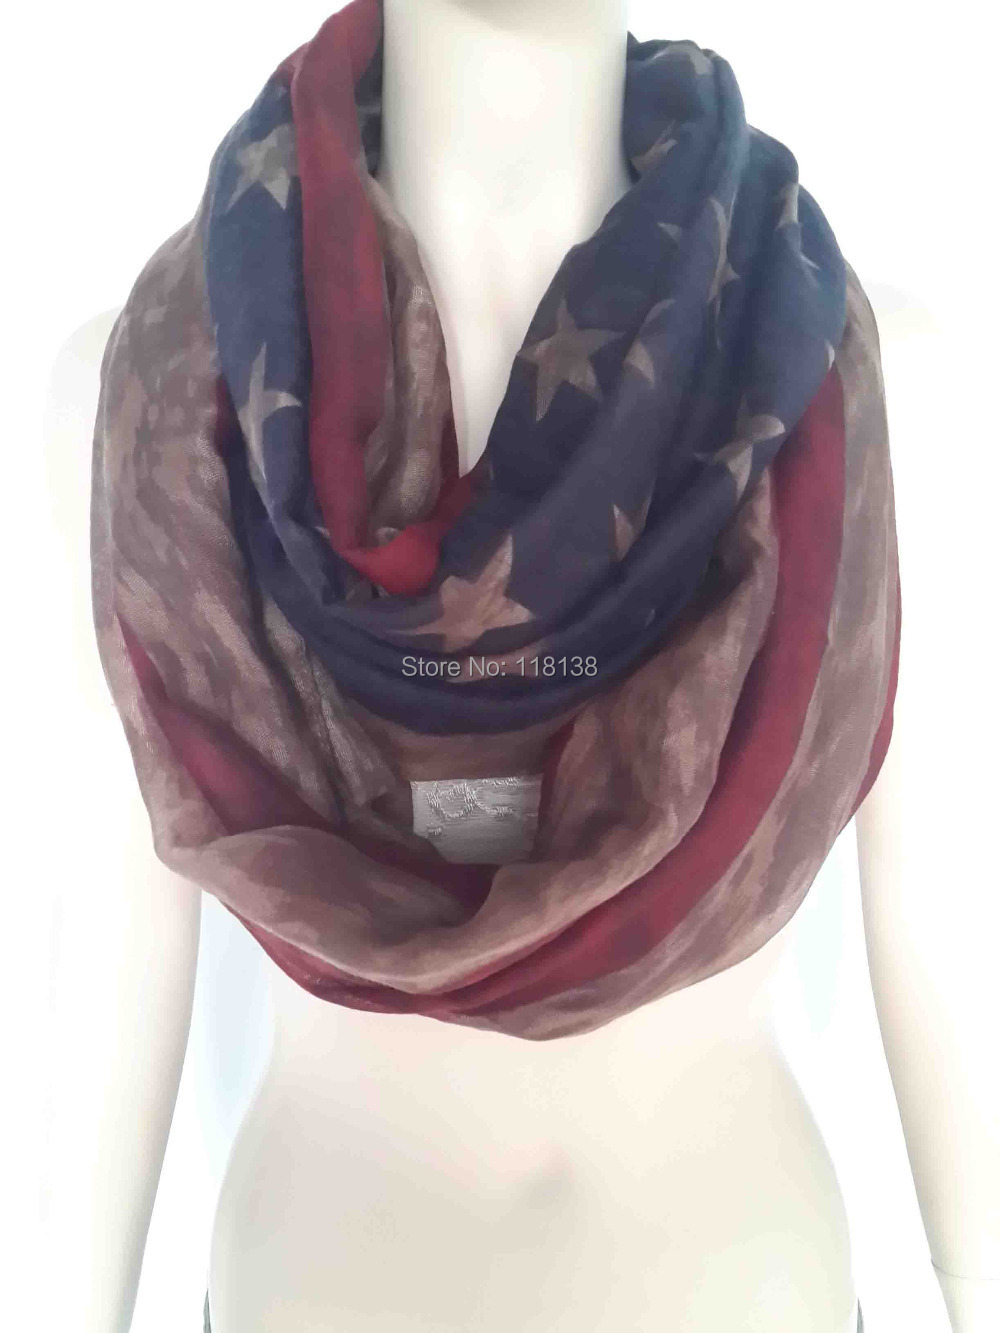 Vintage American Flag Print Infinity Loop Scarf Women's Accessories Gift for Her, Free Shipping(China (Mainland))